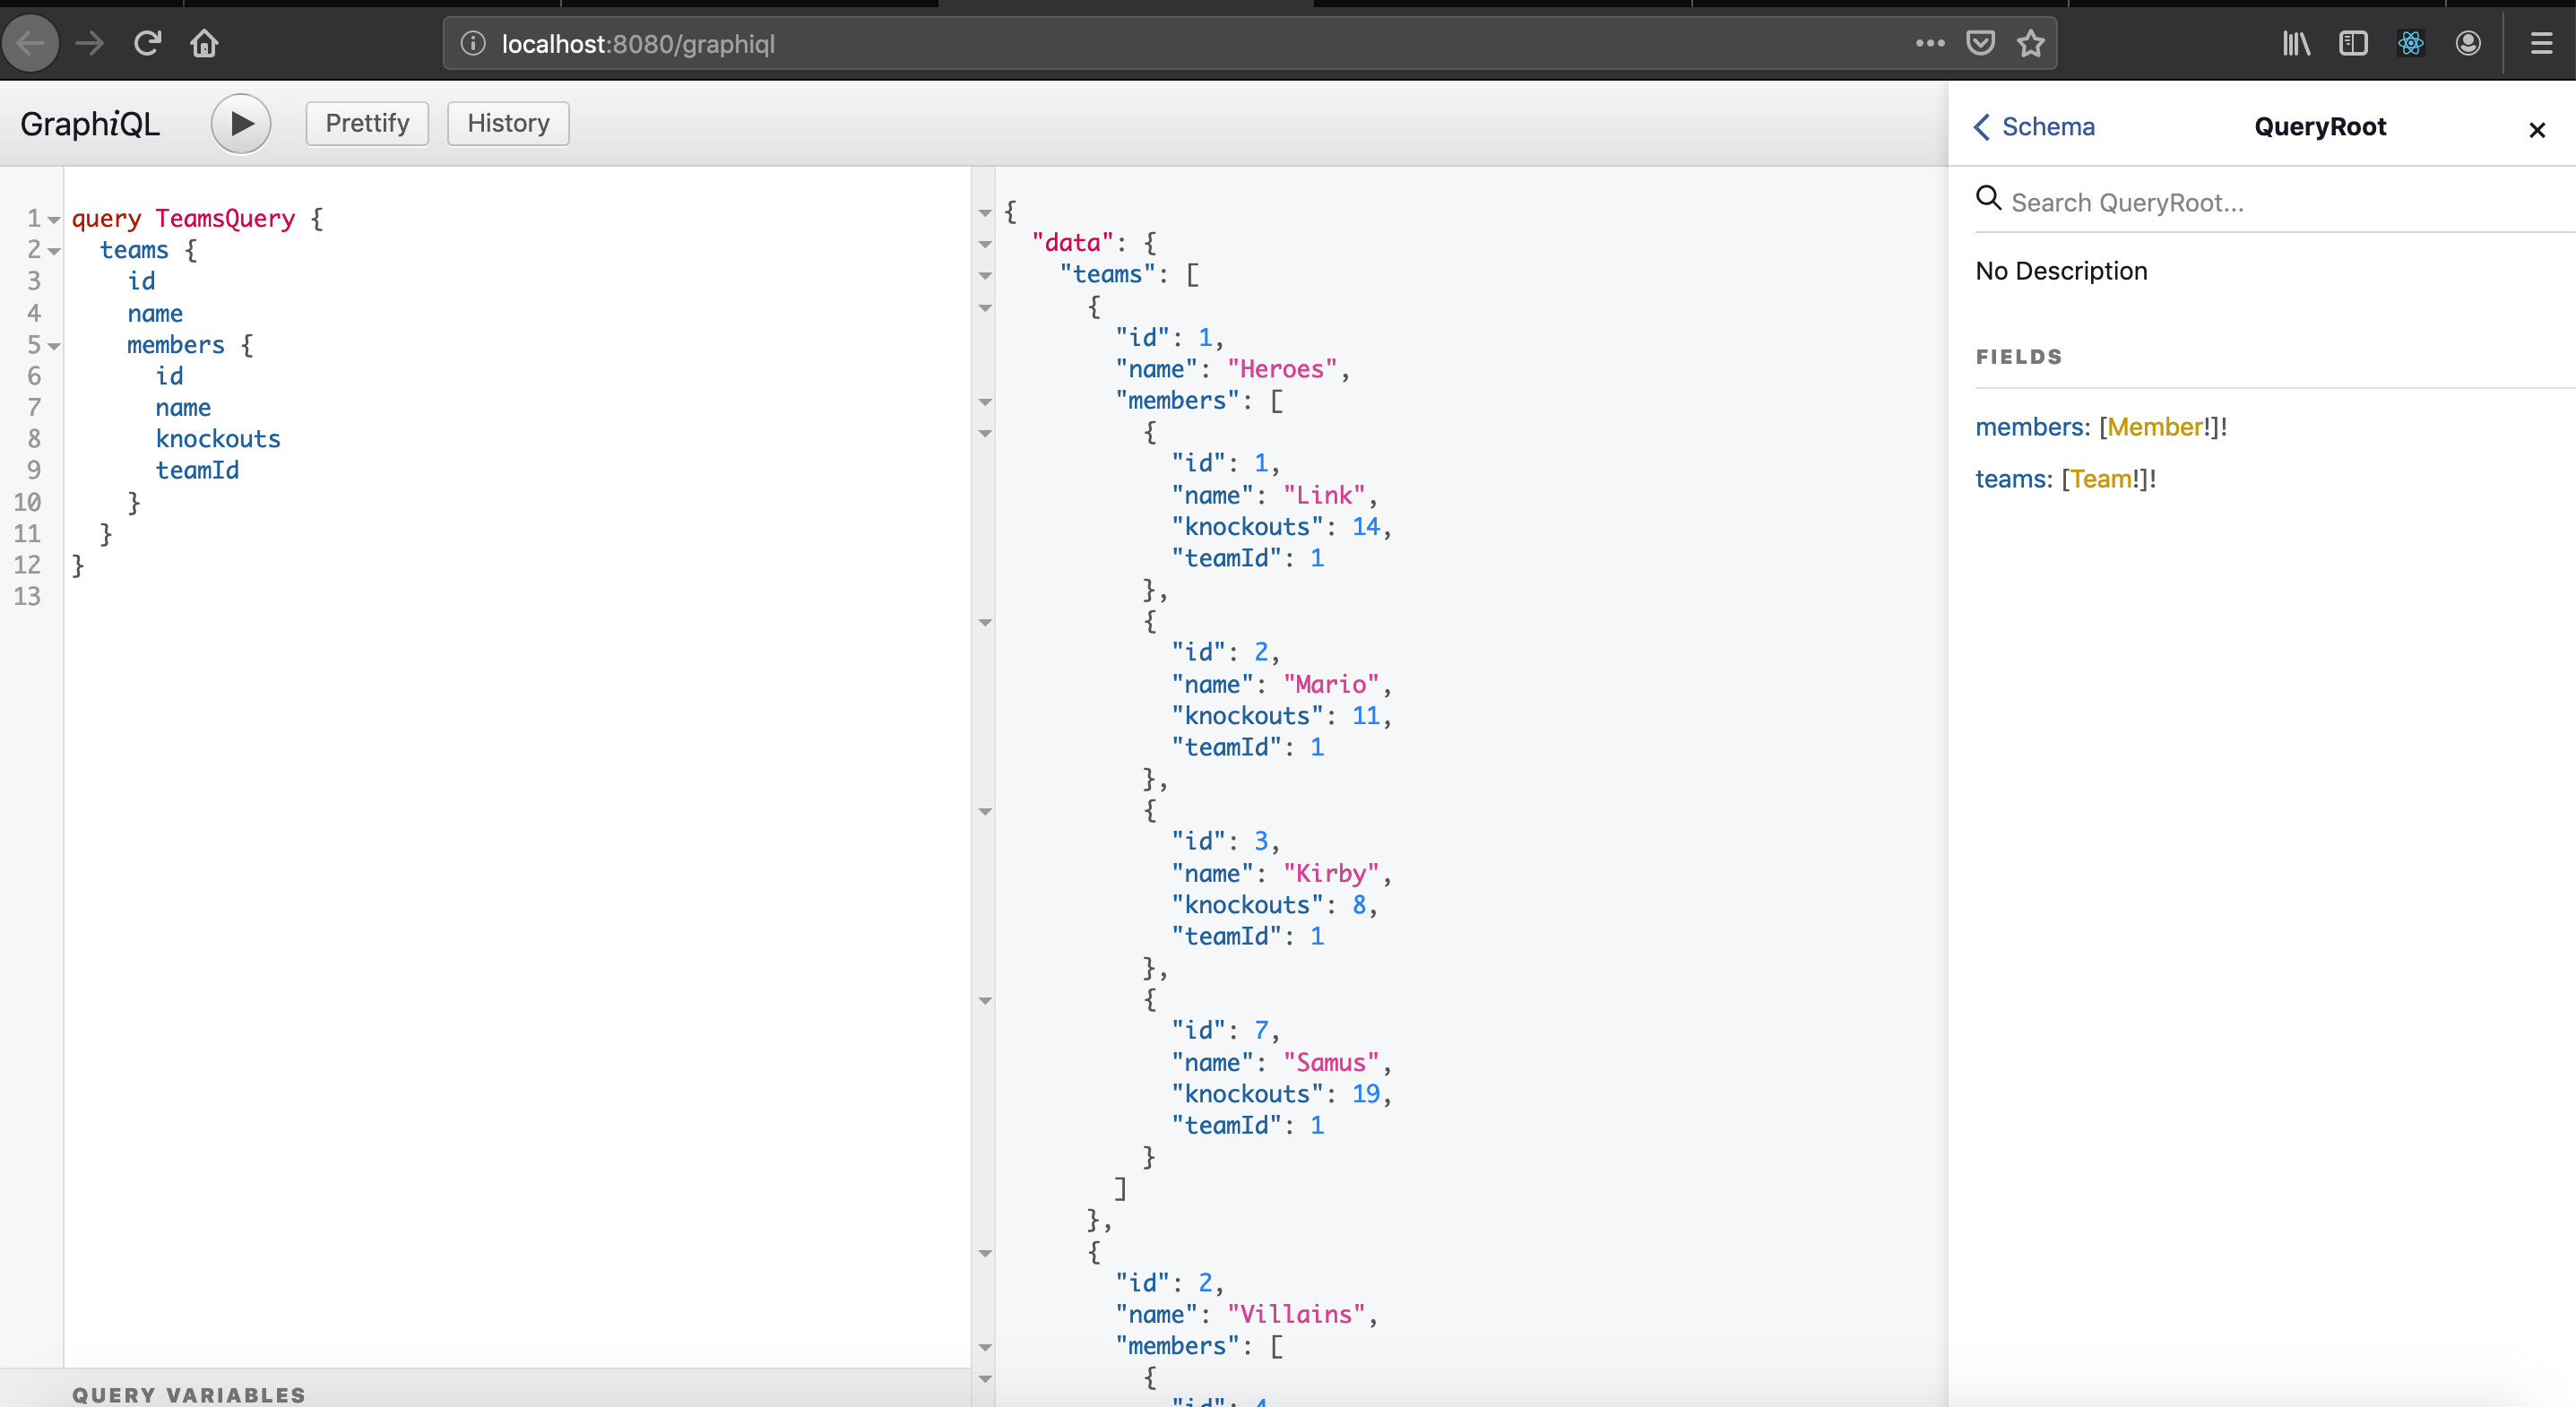 More complex query in graphiql